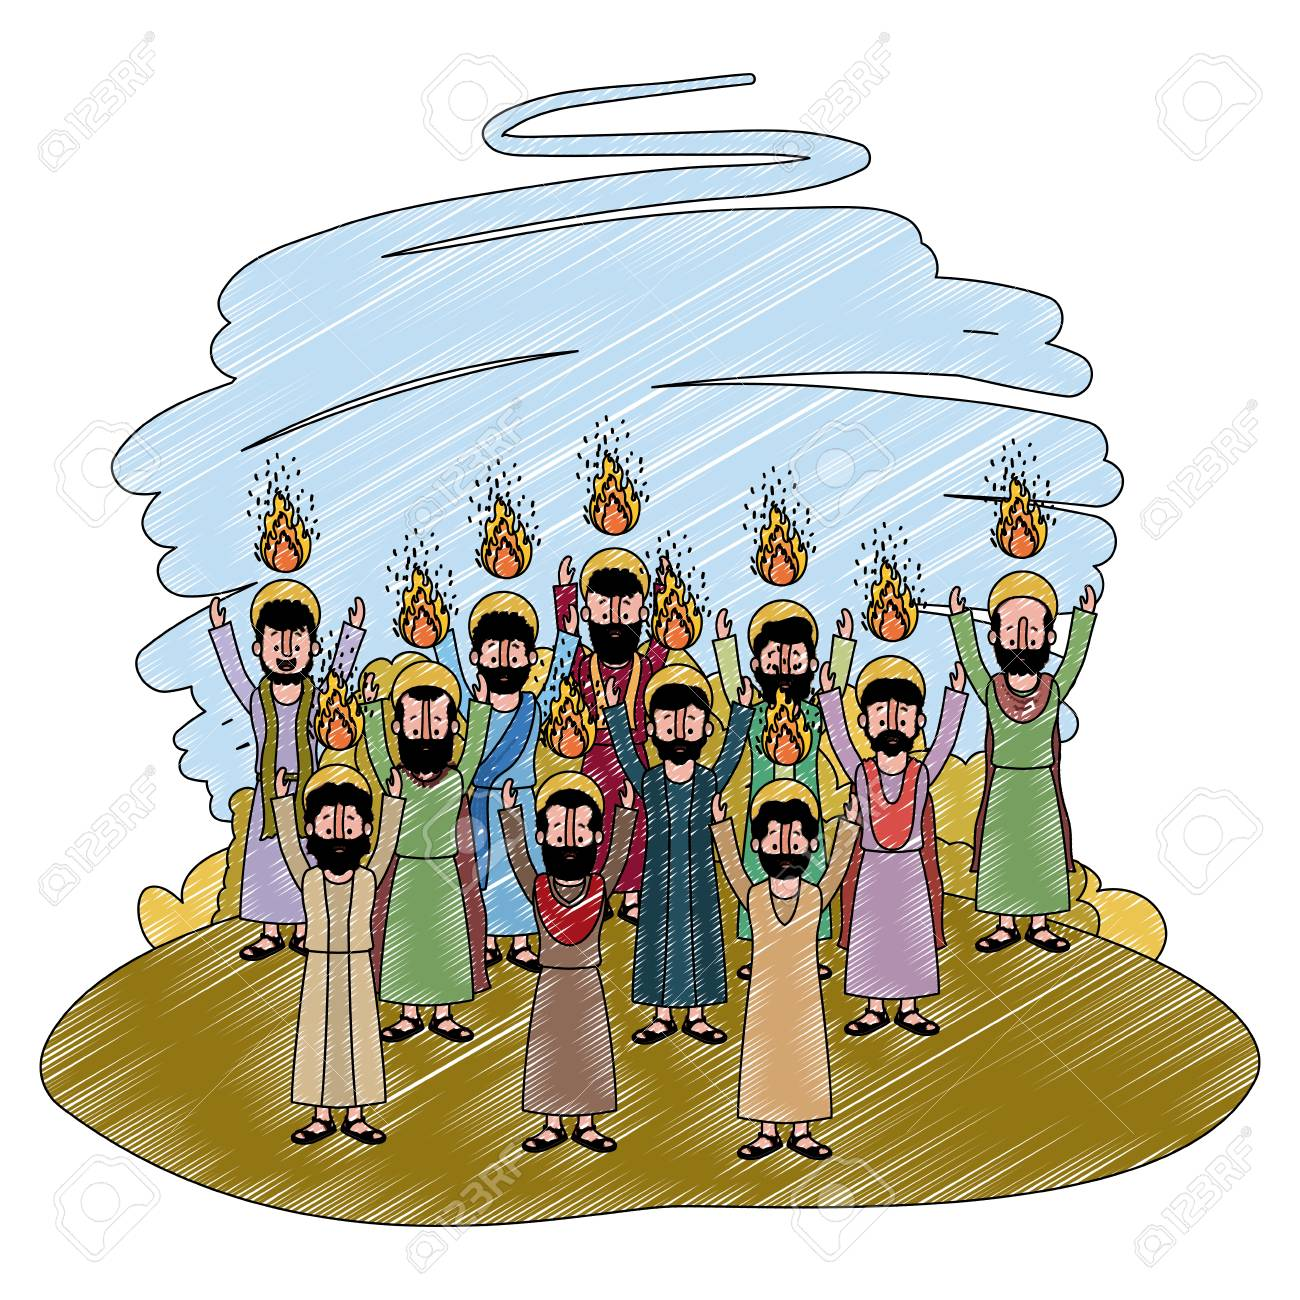 Apostles group pentecost in the camp vector illustration design. - 100591091